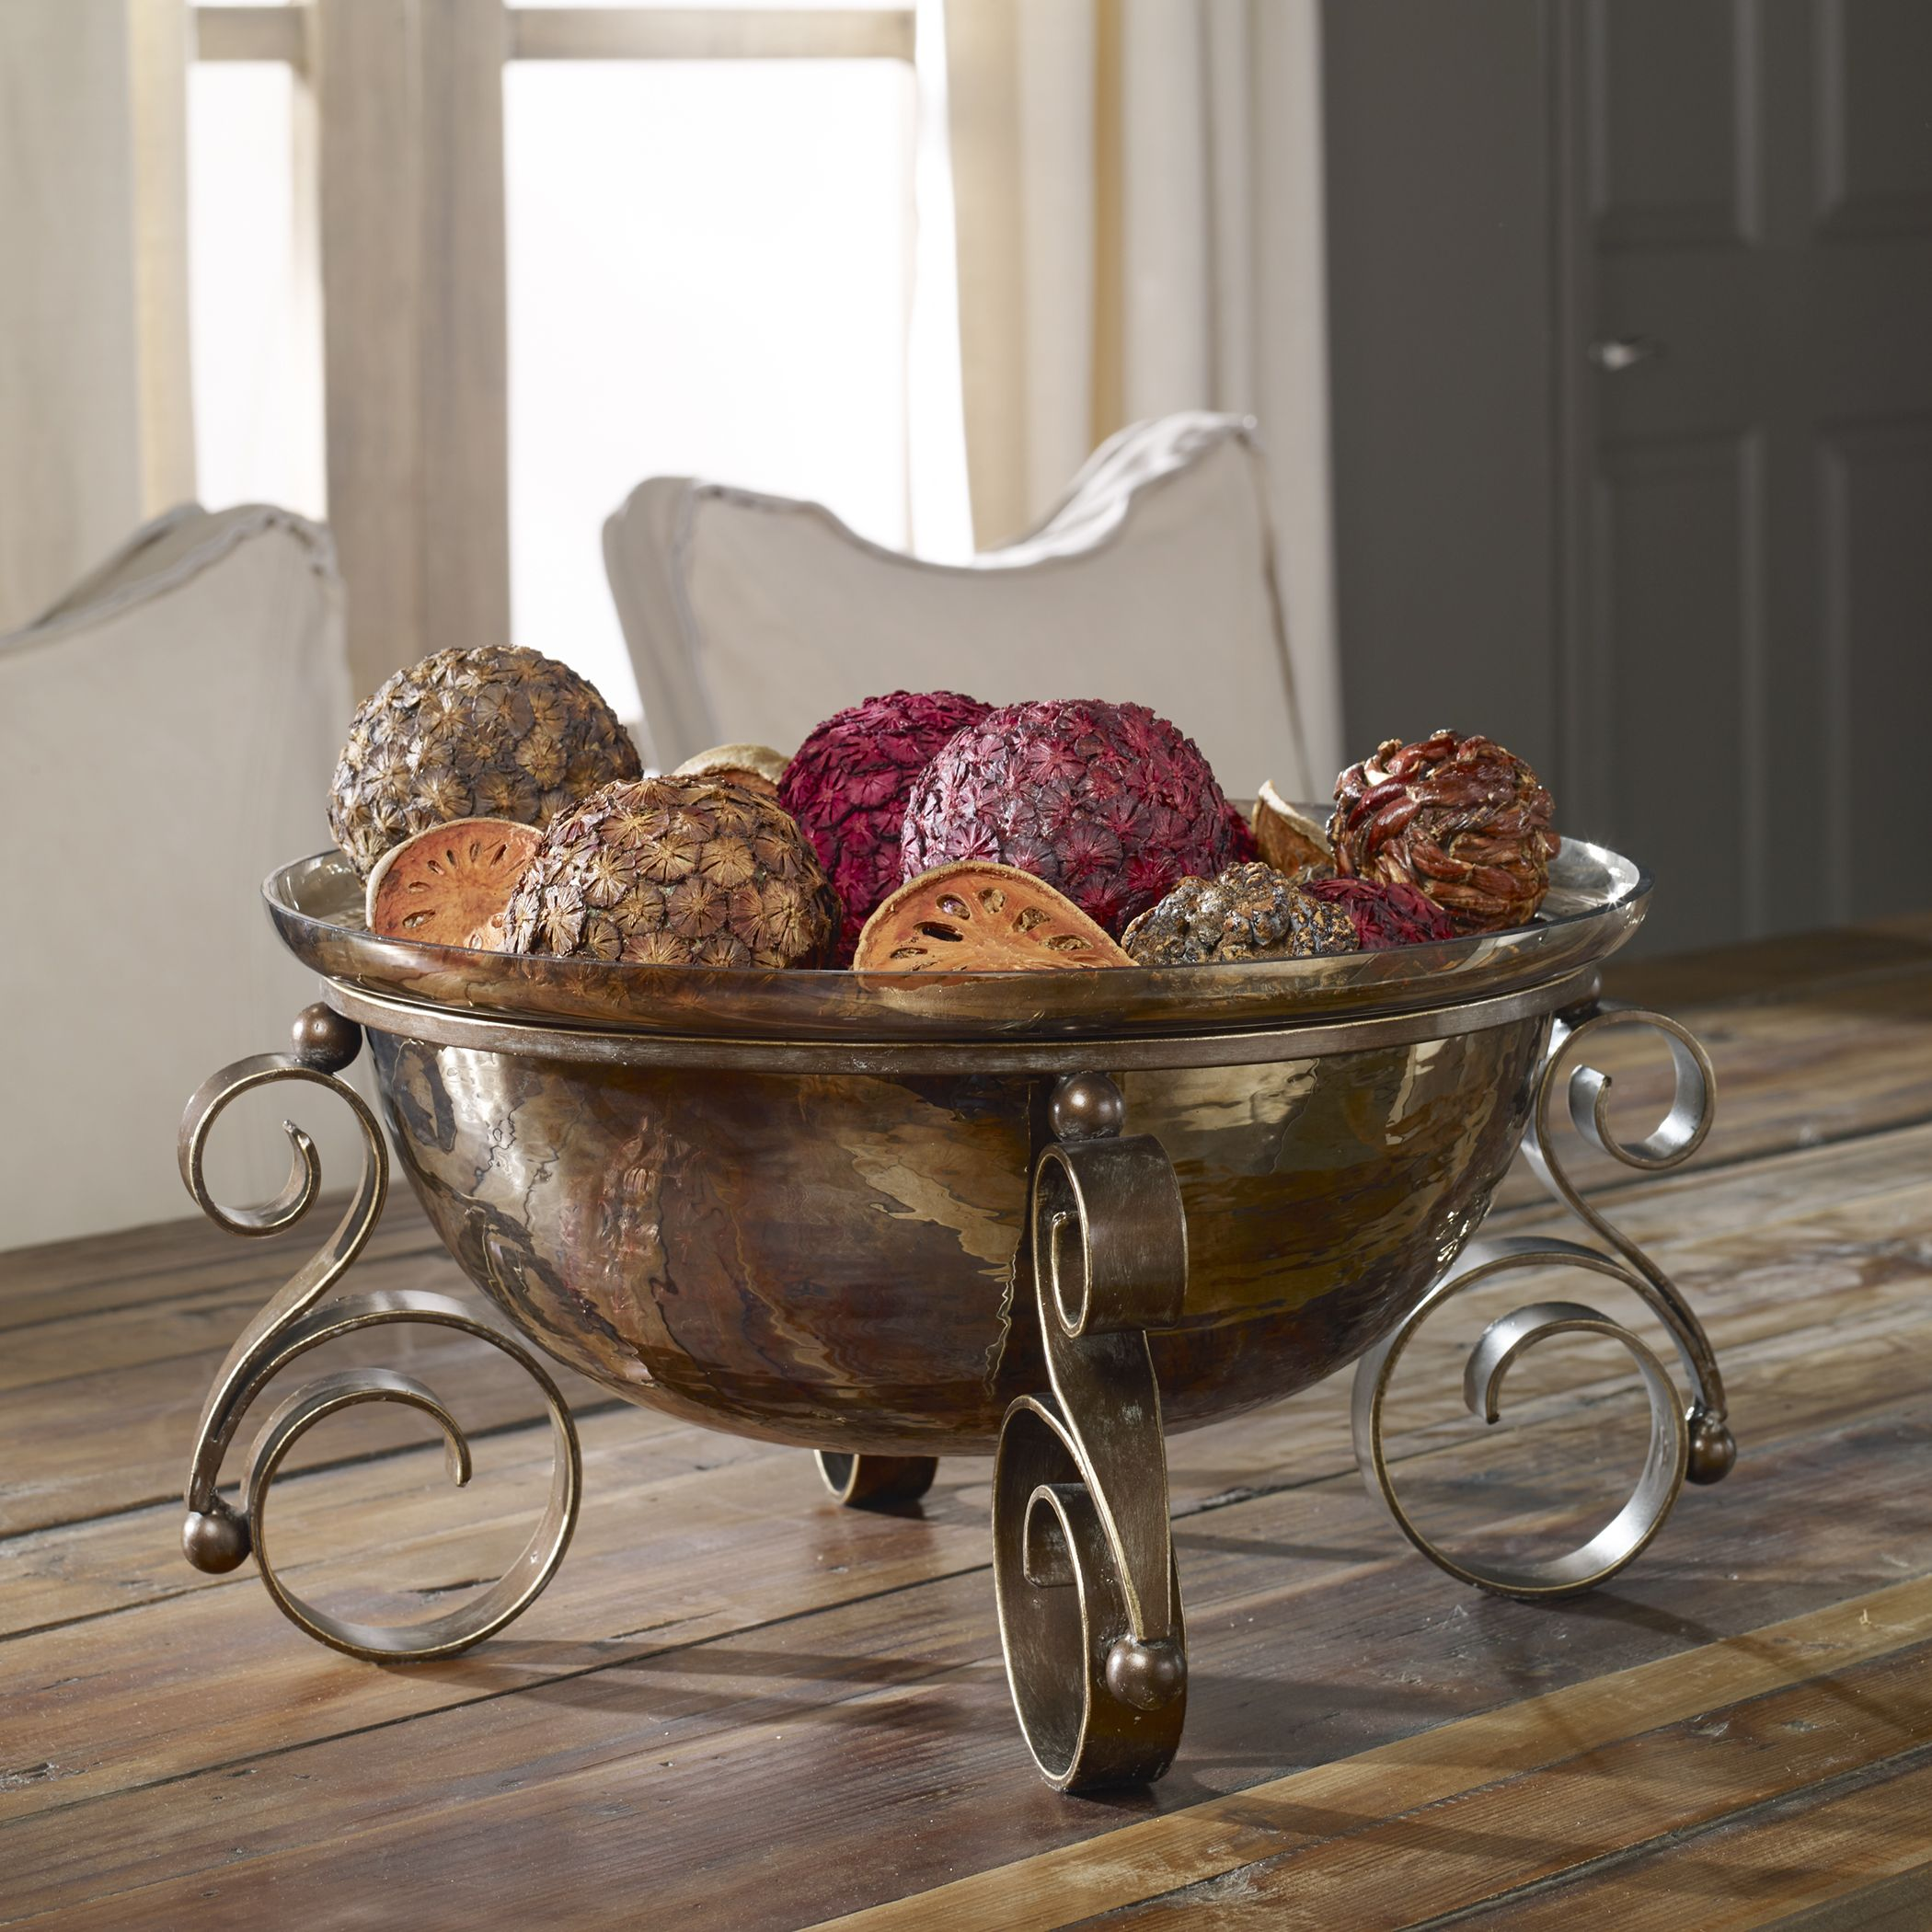 Details About Tuscan Decor Scrolled Iron Glass Fruit Bowl Centerpiece Decorative Old World